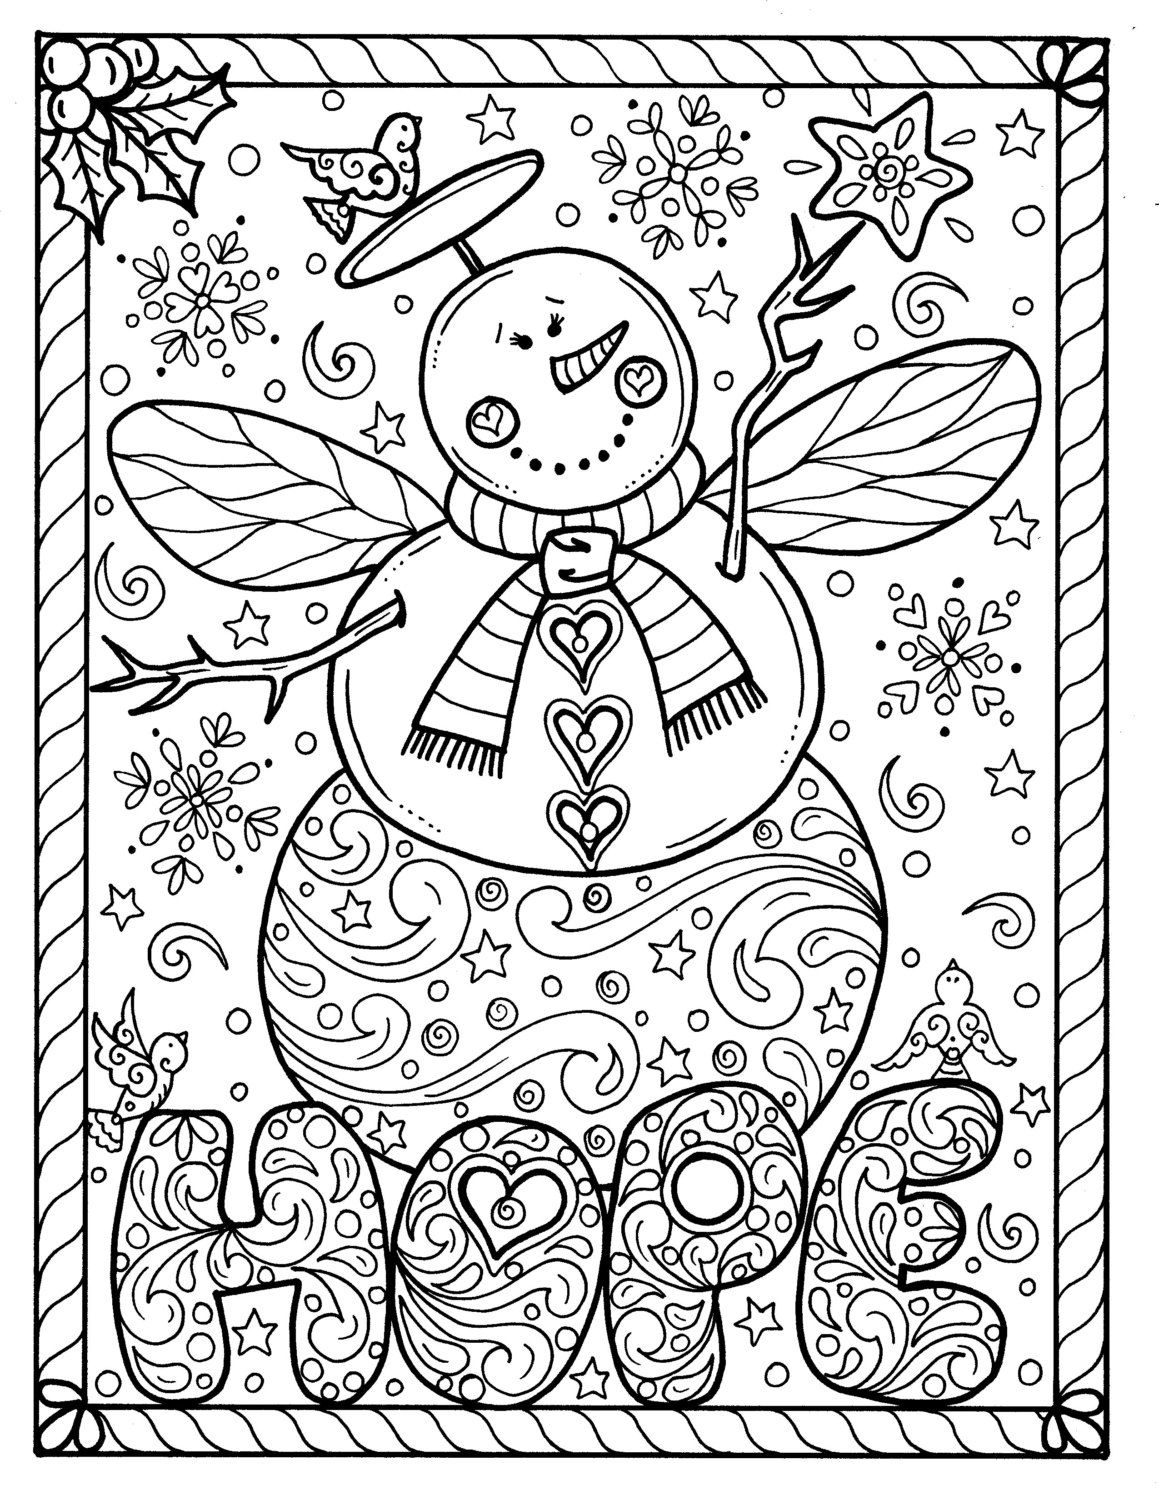 Snow Angel Instant Download Christmas Coloring Page Holidays Etsy Printable Christmas Coloring Pages Angel Coloring Pages Holiday Coloring Book